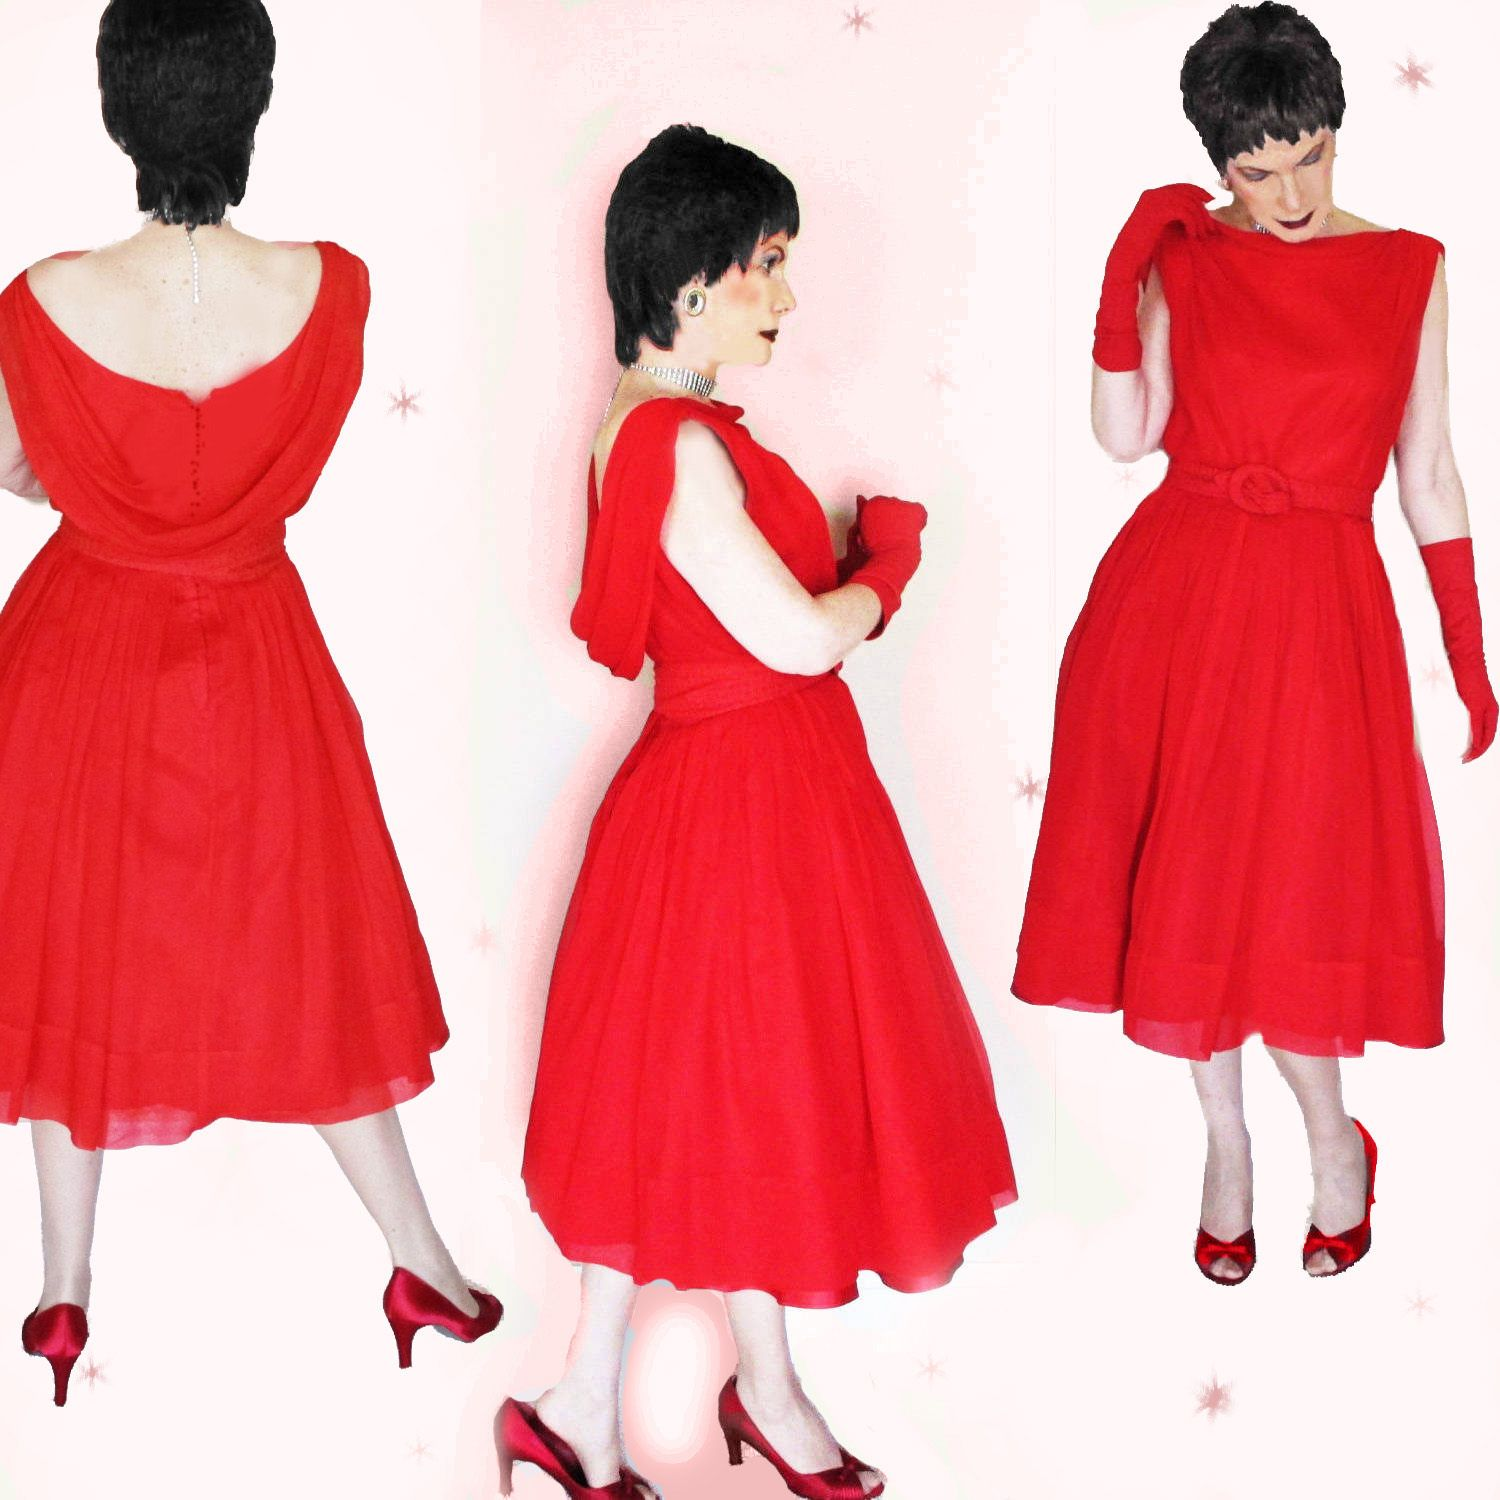 Red Chiffon Cocktail Dress Party Dress, Wedding Guest Dress with ...